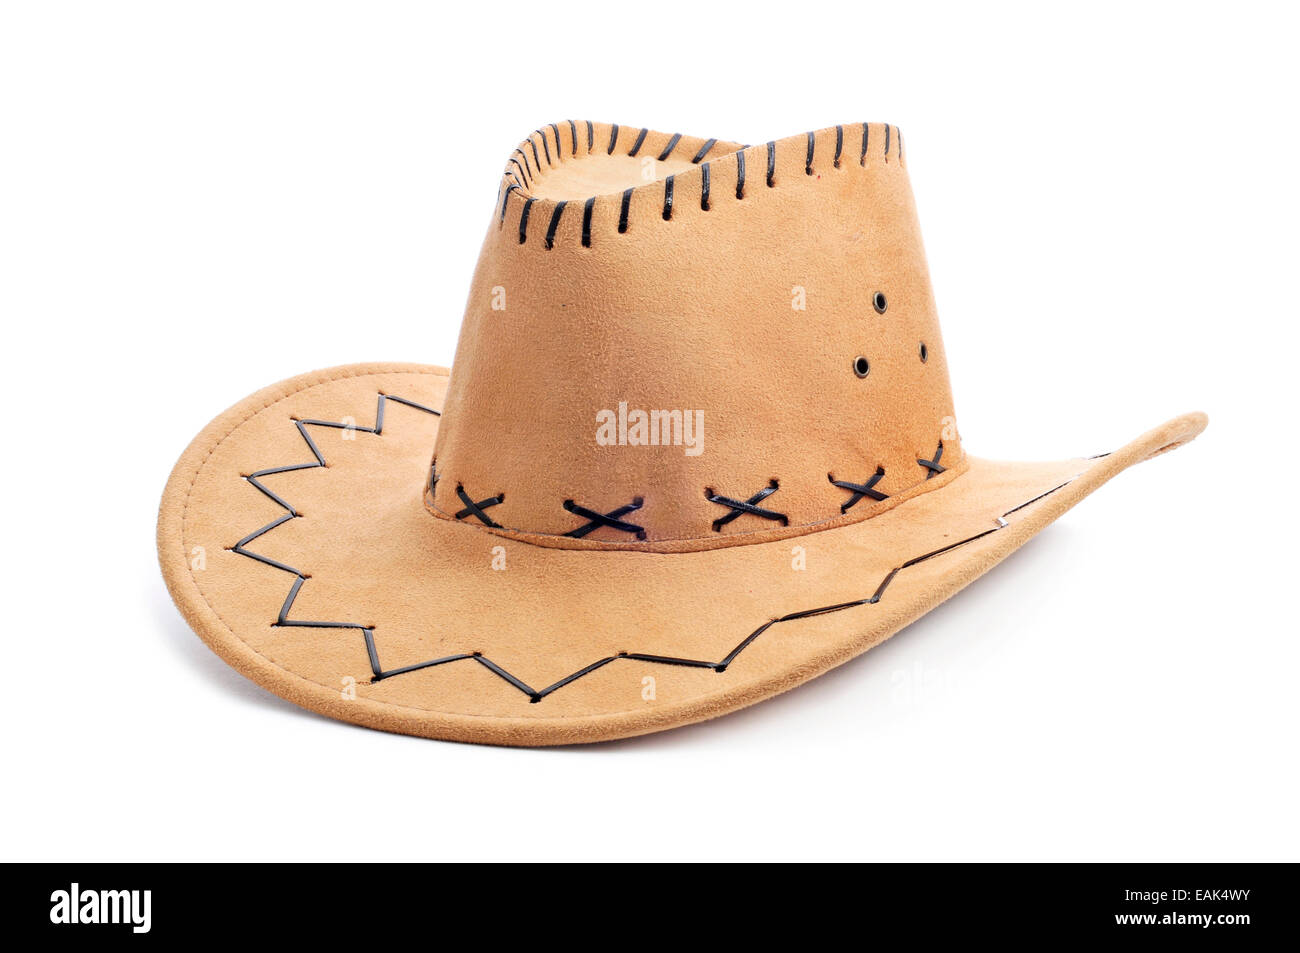 a leatherette cowboy hat on a white background - Stock Image